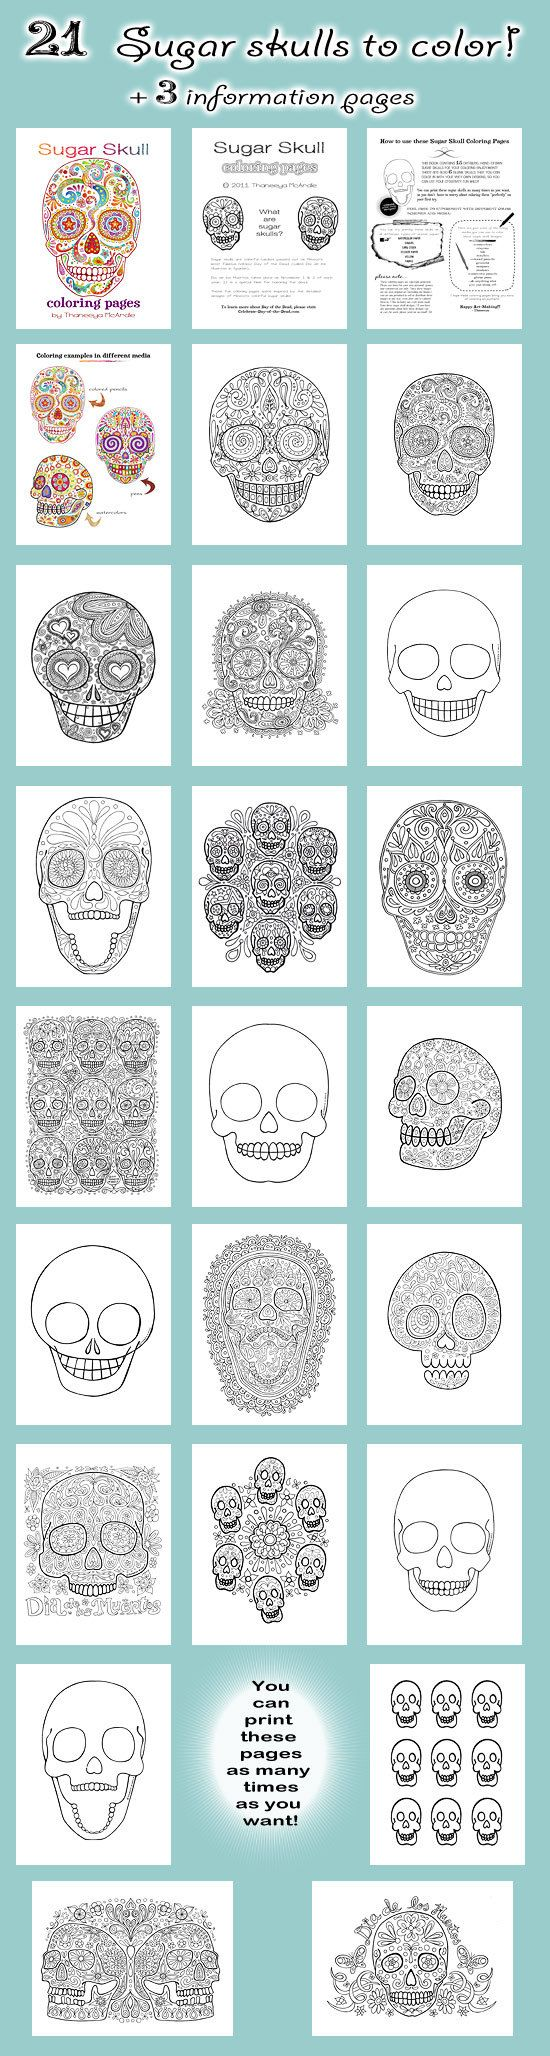 Sugar Skull coloring pages. Not free, but once you have it, you can print however many times you want